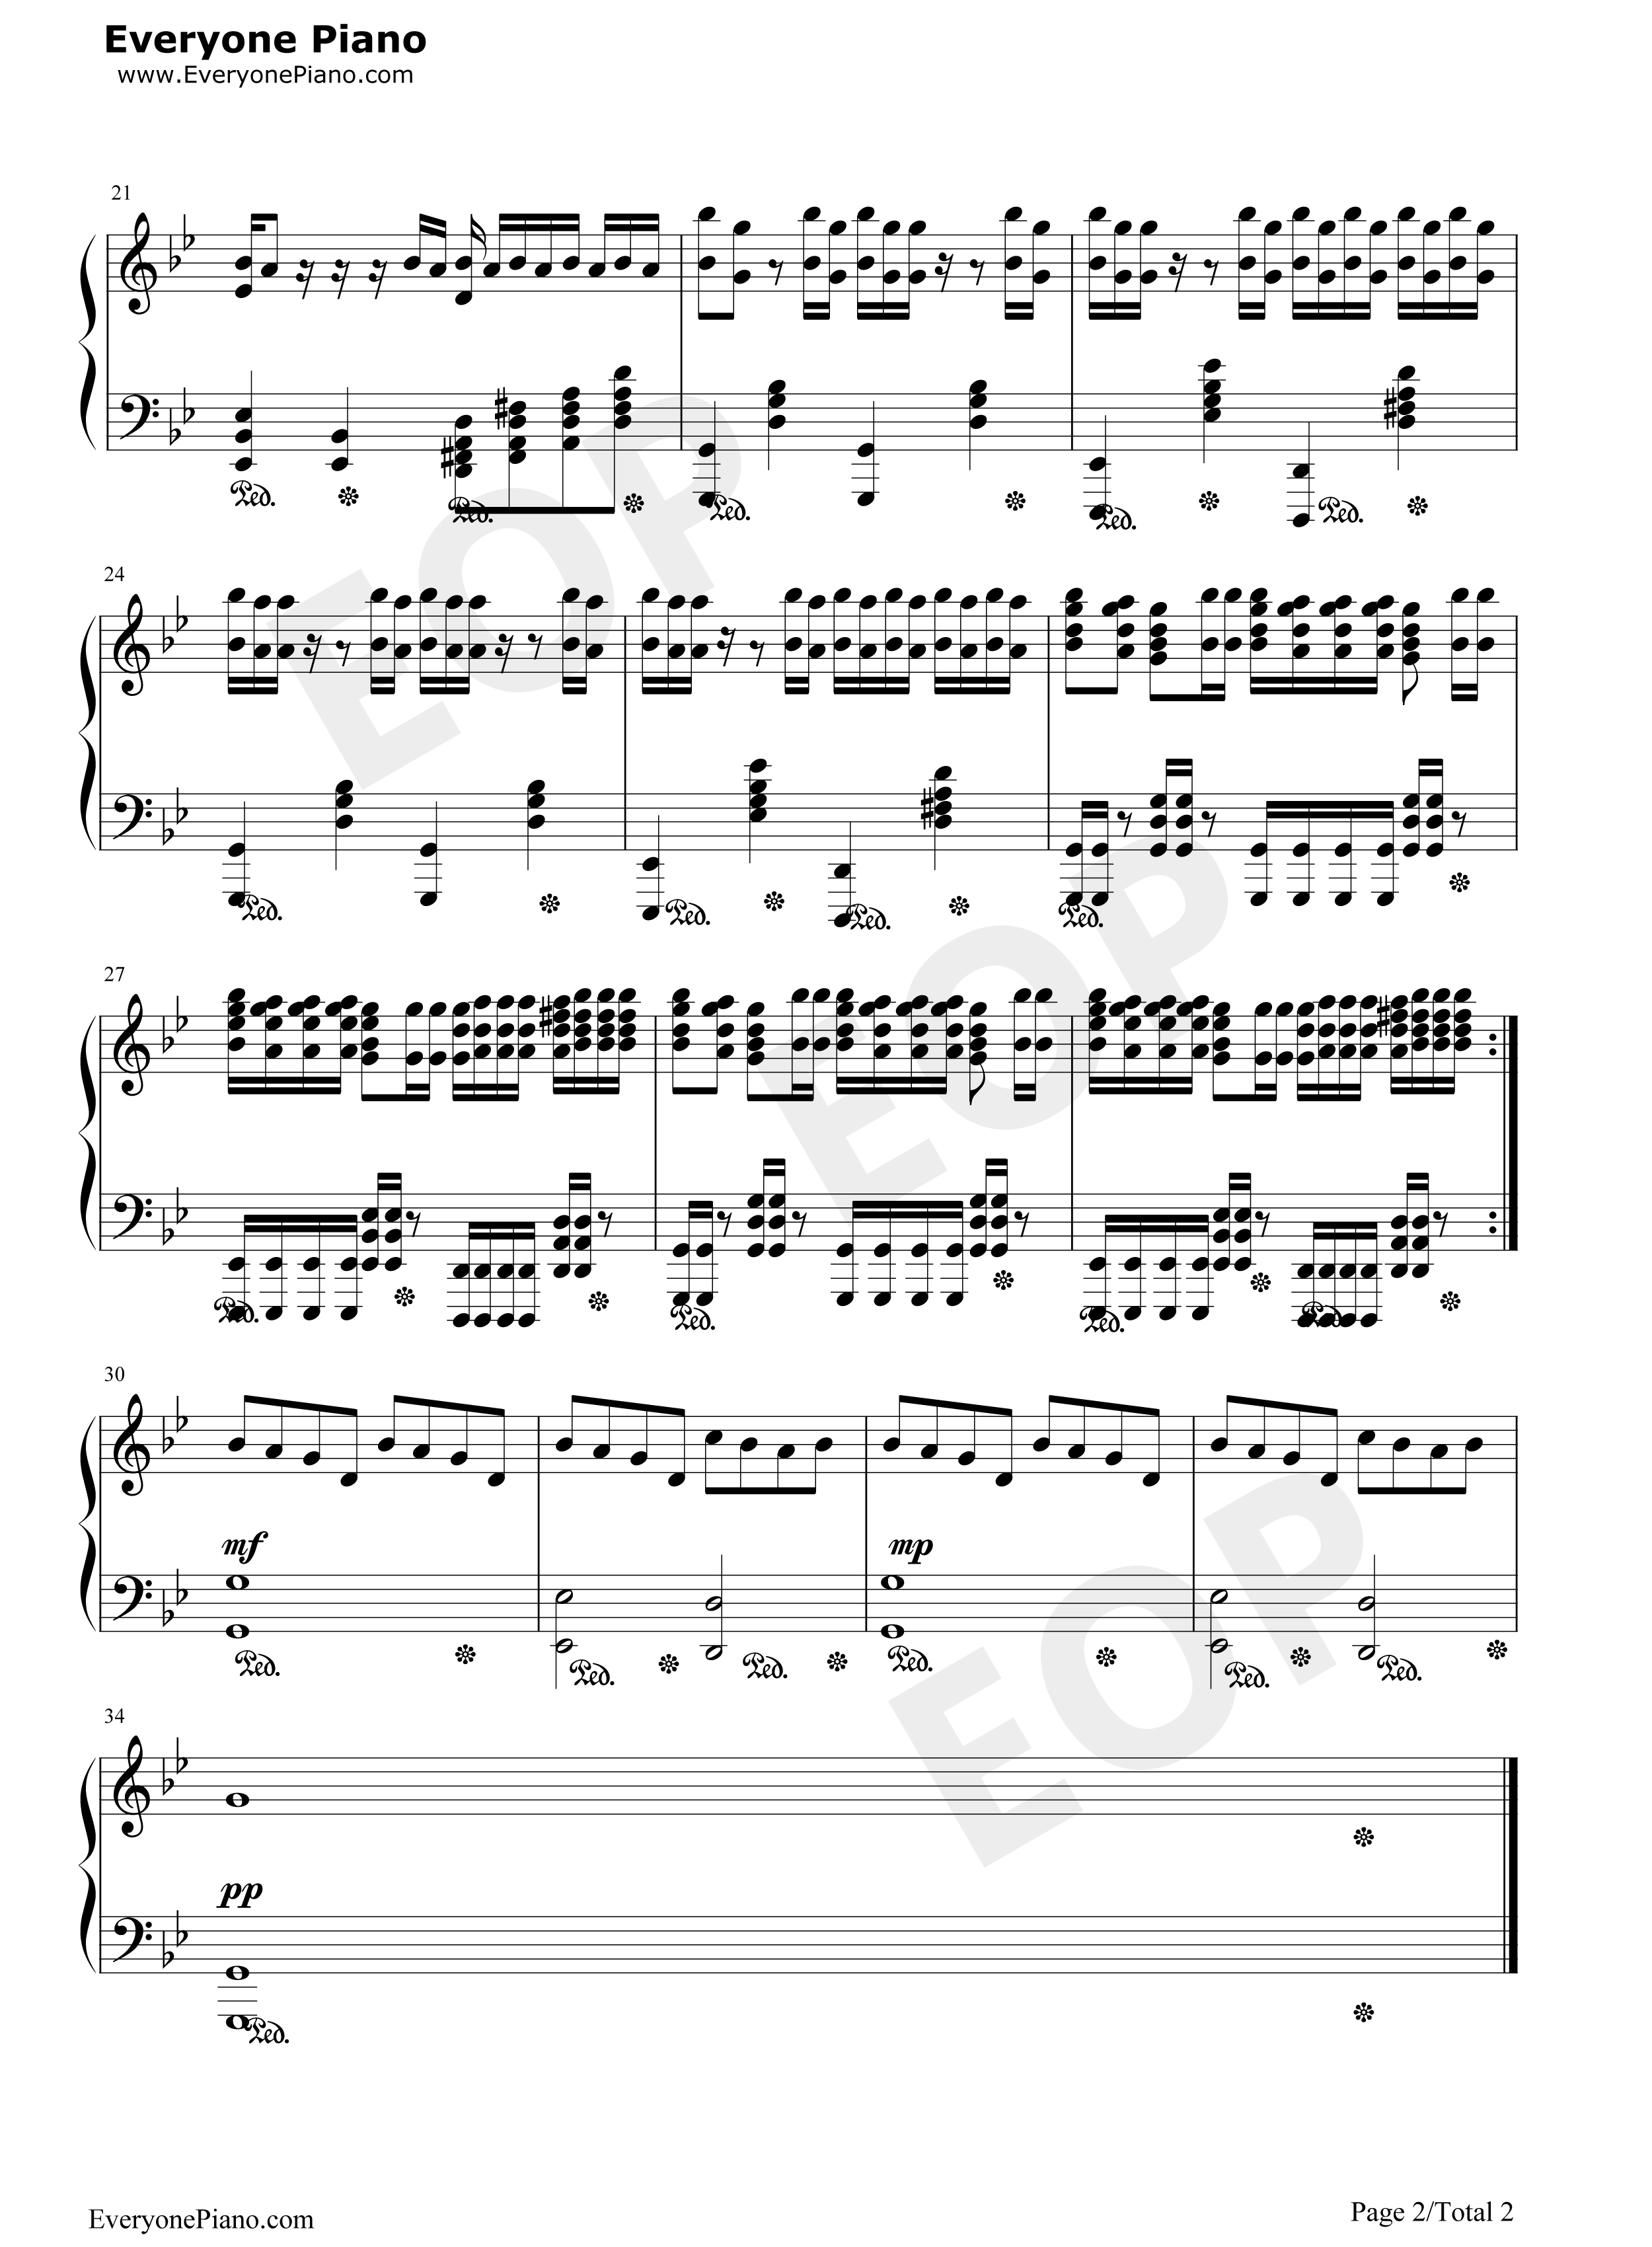 Requiem for a dream stave preview 2 free piano sheet music listen now print sheet requiem for a dream stave preview 2 hexwebz Image collections